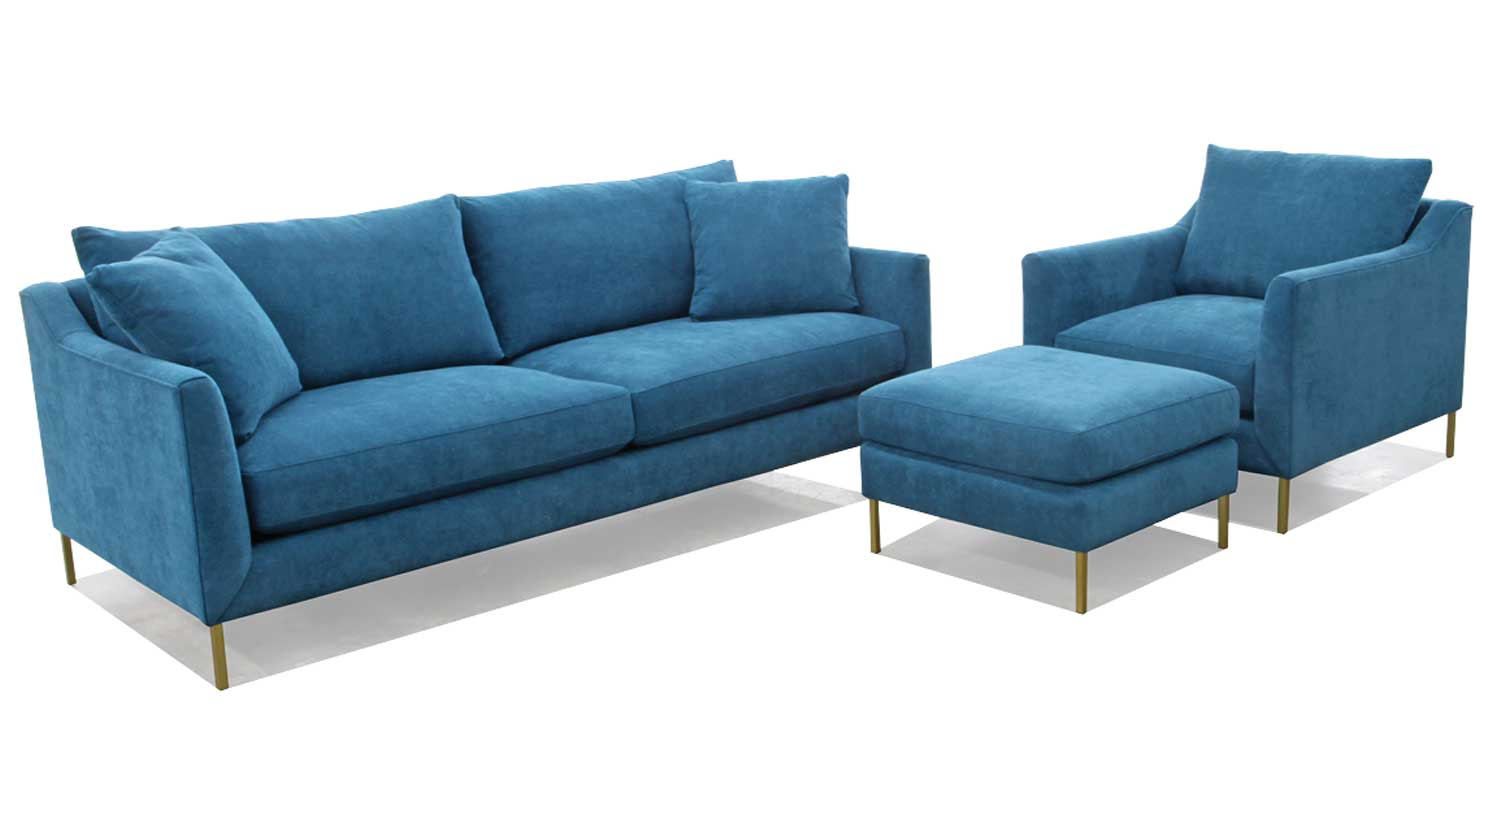 Sensational Circle Furniture Davis Sofa Modern Sofas And Chairs Gmtry Best Dining Table And Chair Ideas Images Gmtryco